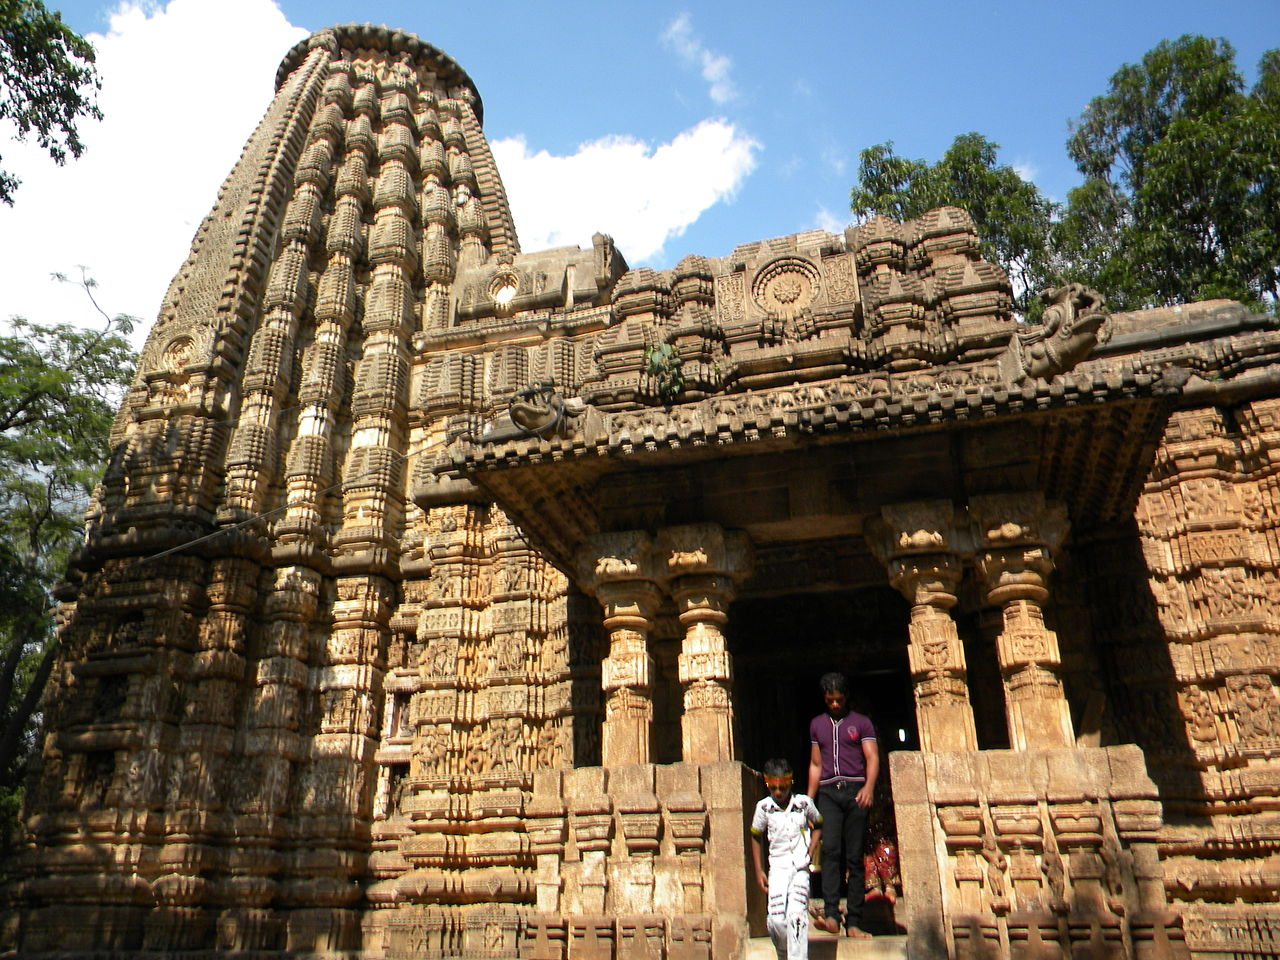 Bhoramdeo Temple - Best Historical Place To Visit In Chhattisgarh